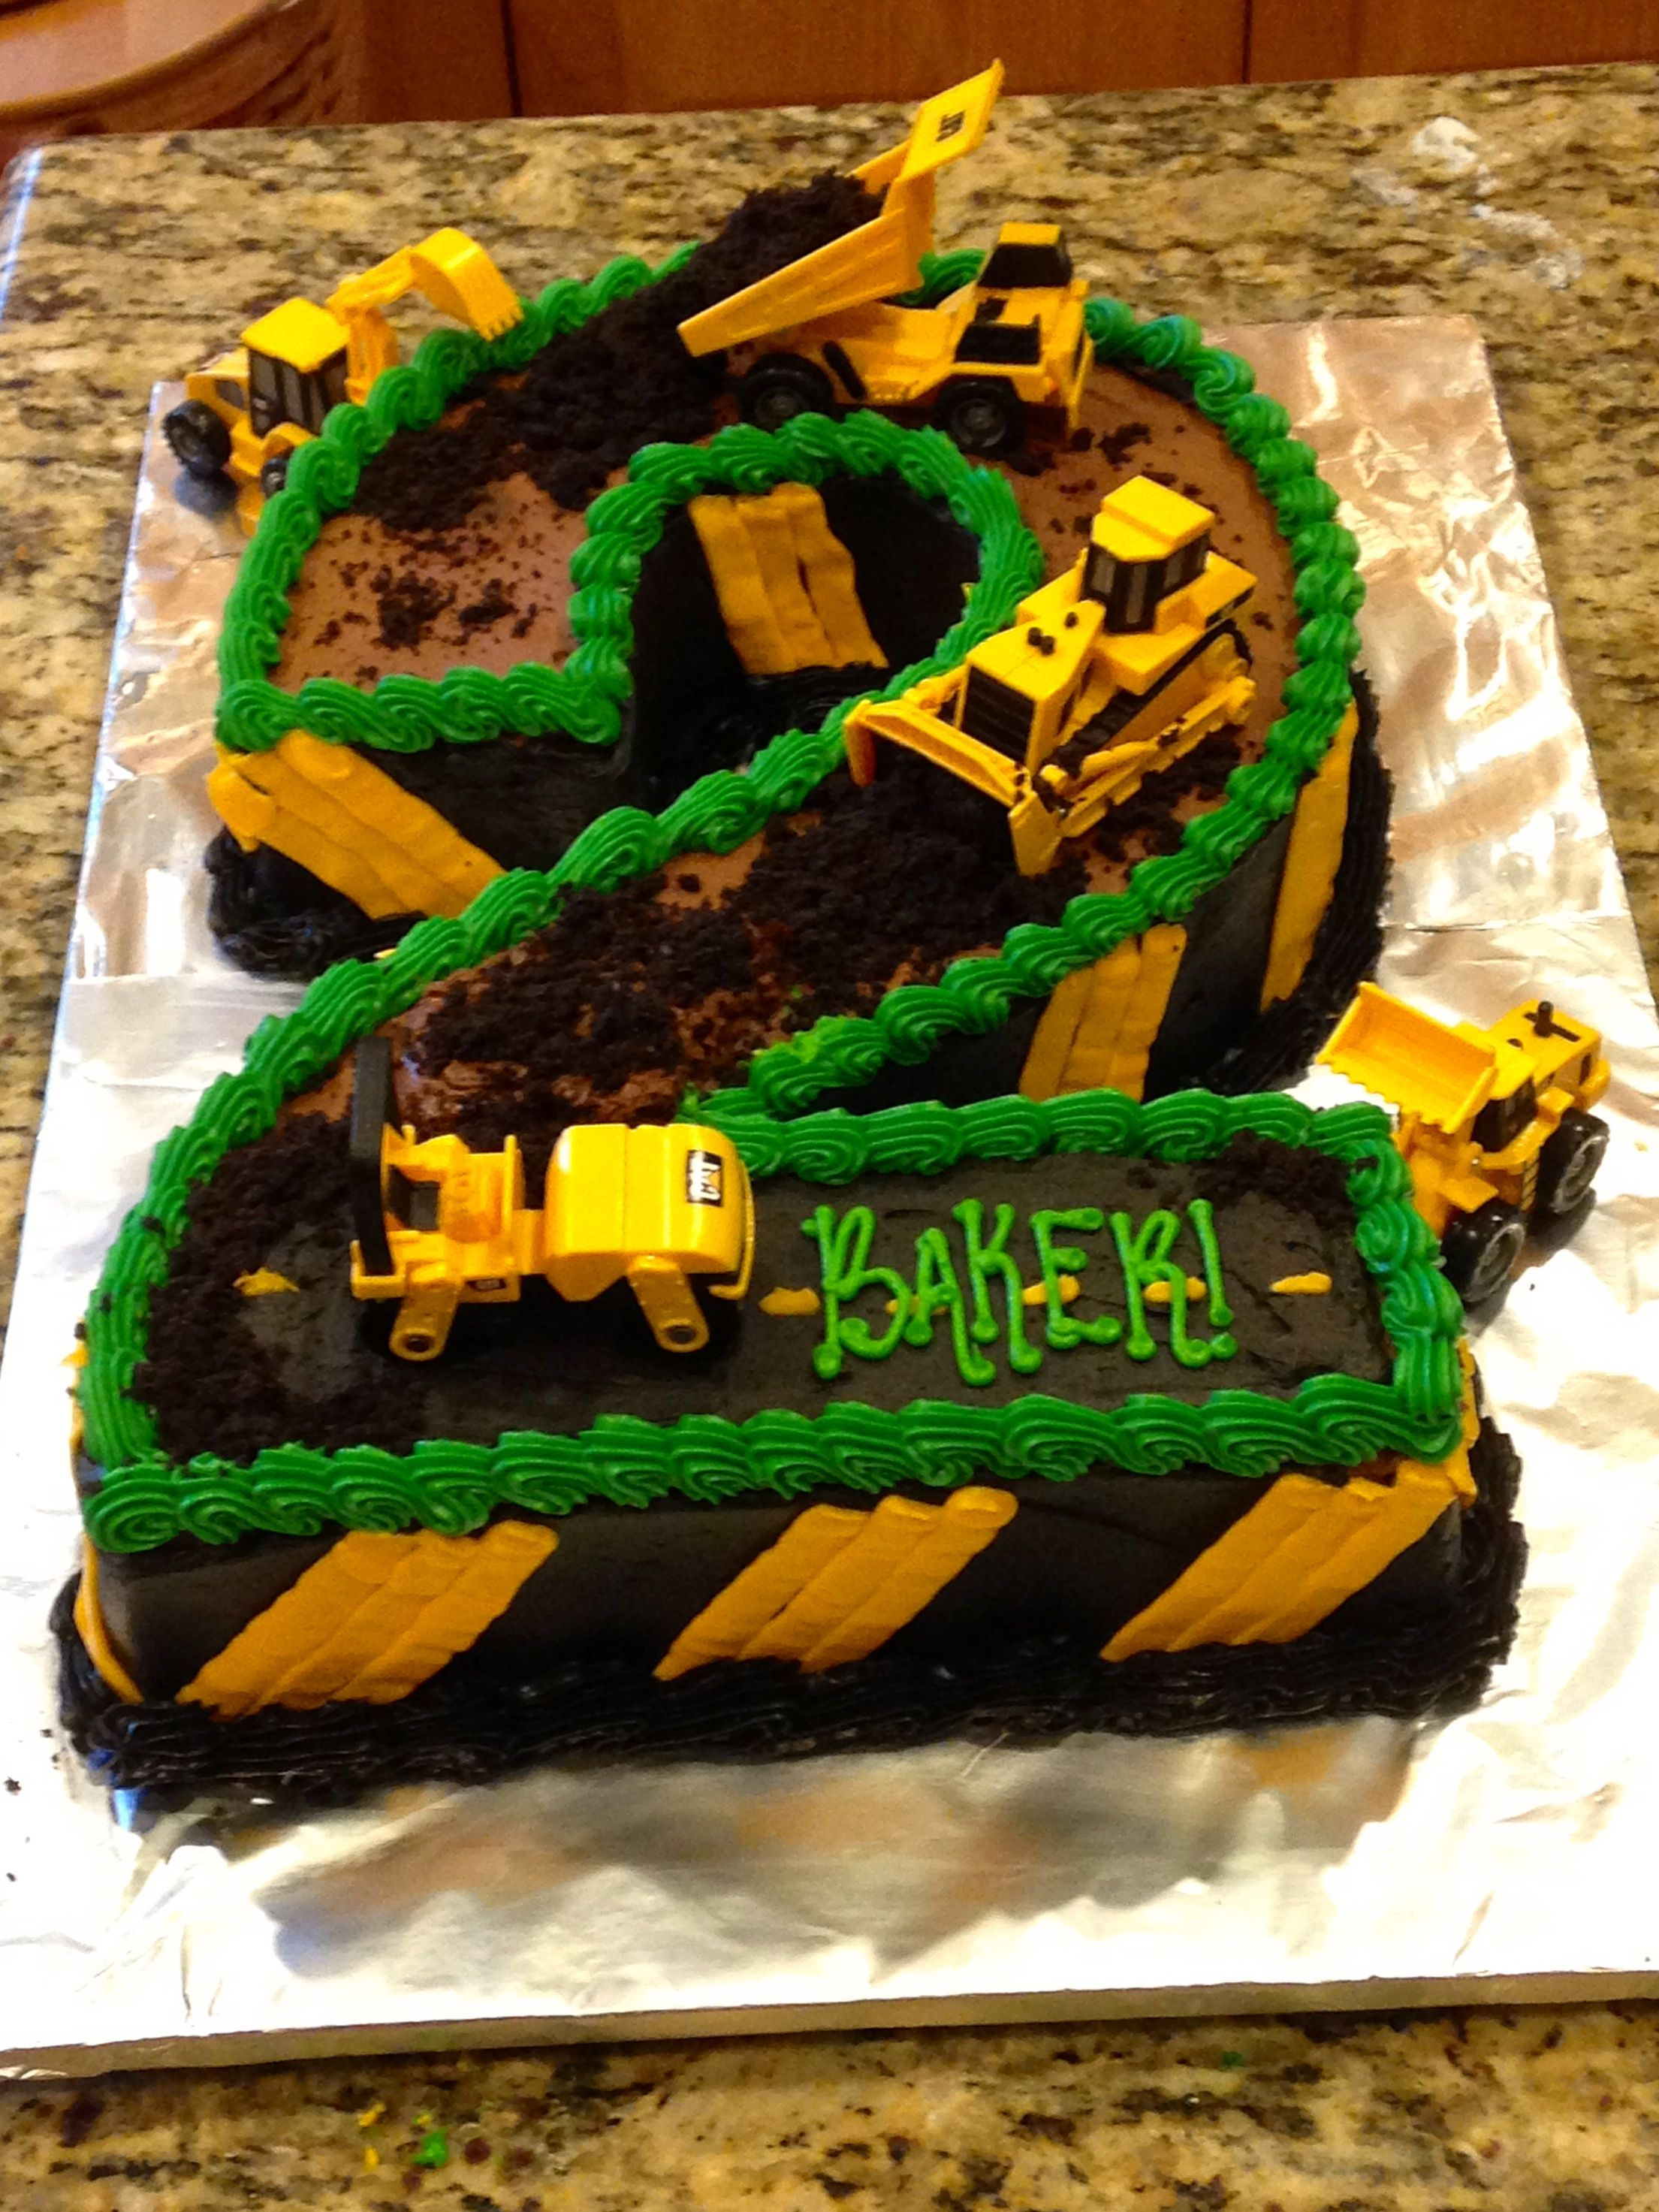 Birthday Cake Ideas For 2nd Birthday Boy : Construction theme 2nd birthday cake construction cake ...